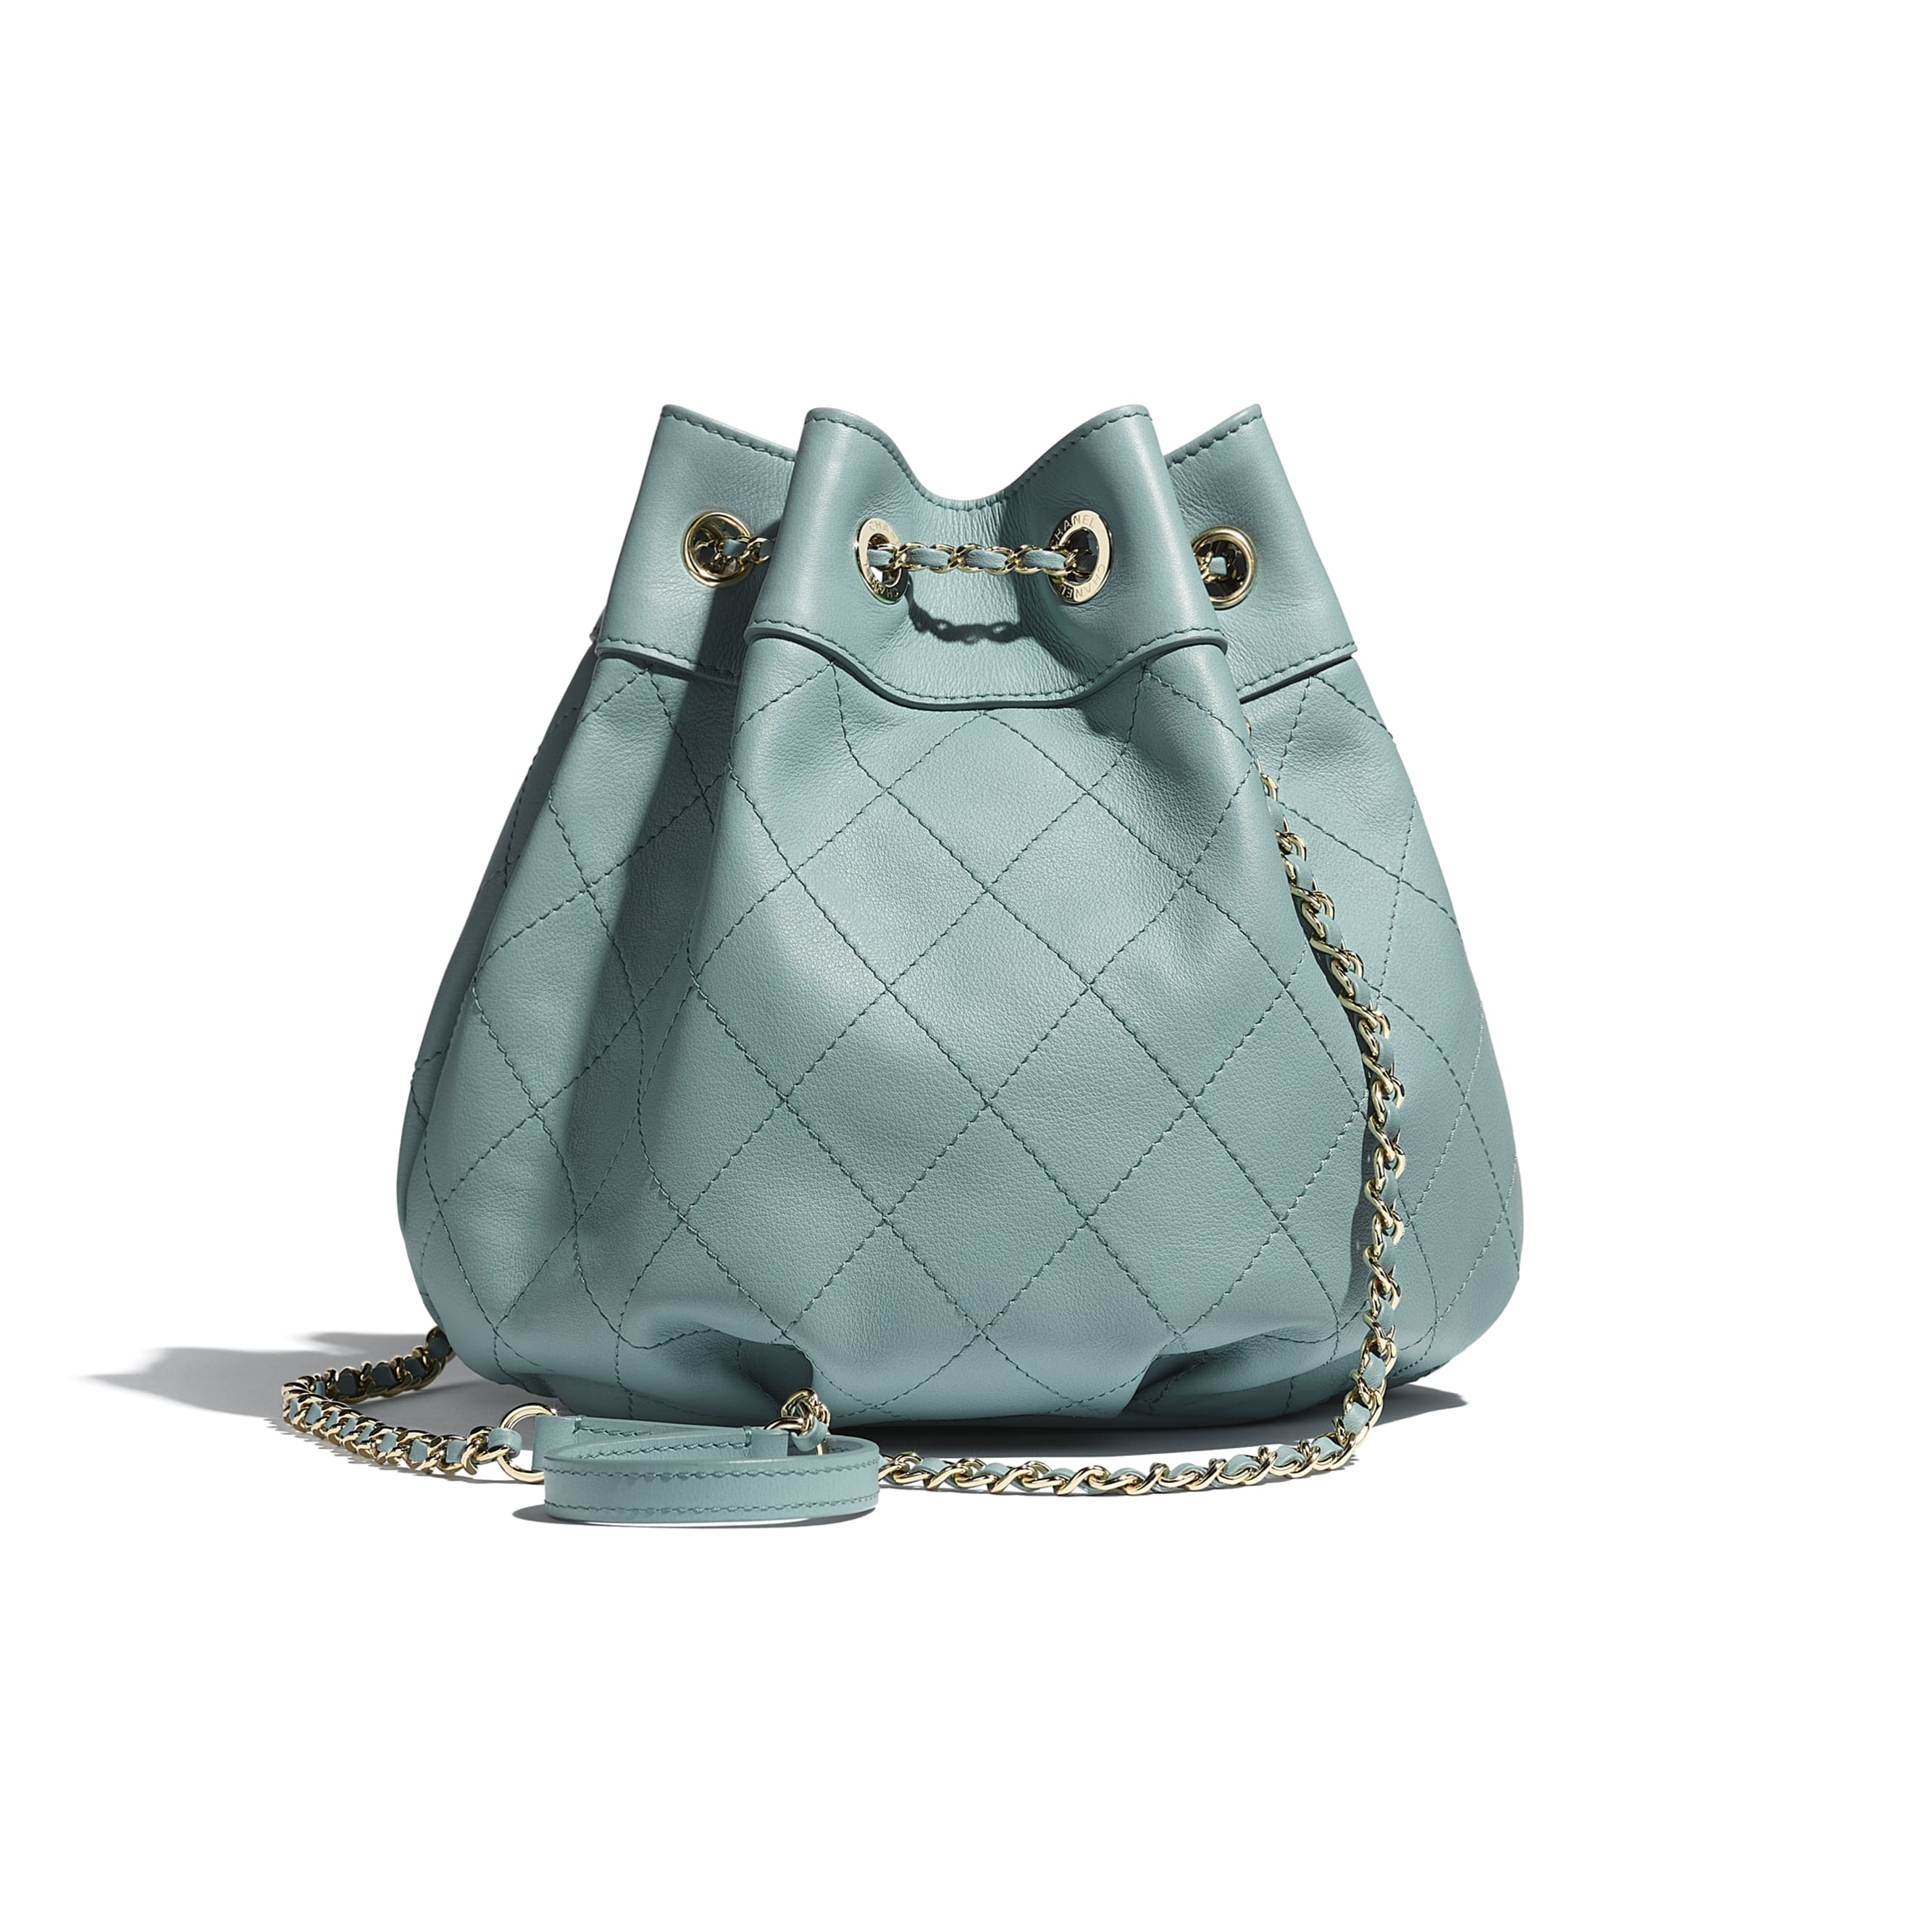 Drawstring Bag - Blue - Calfskin & Gold-Tone Metal - CHANEL - Alternative view - see standard sized version